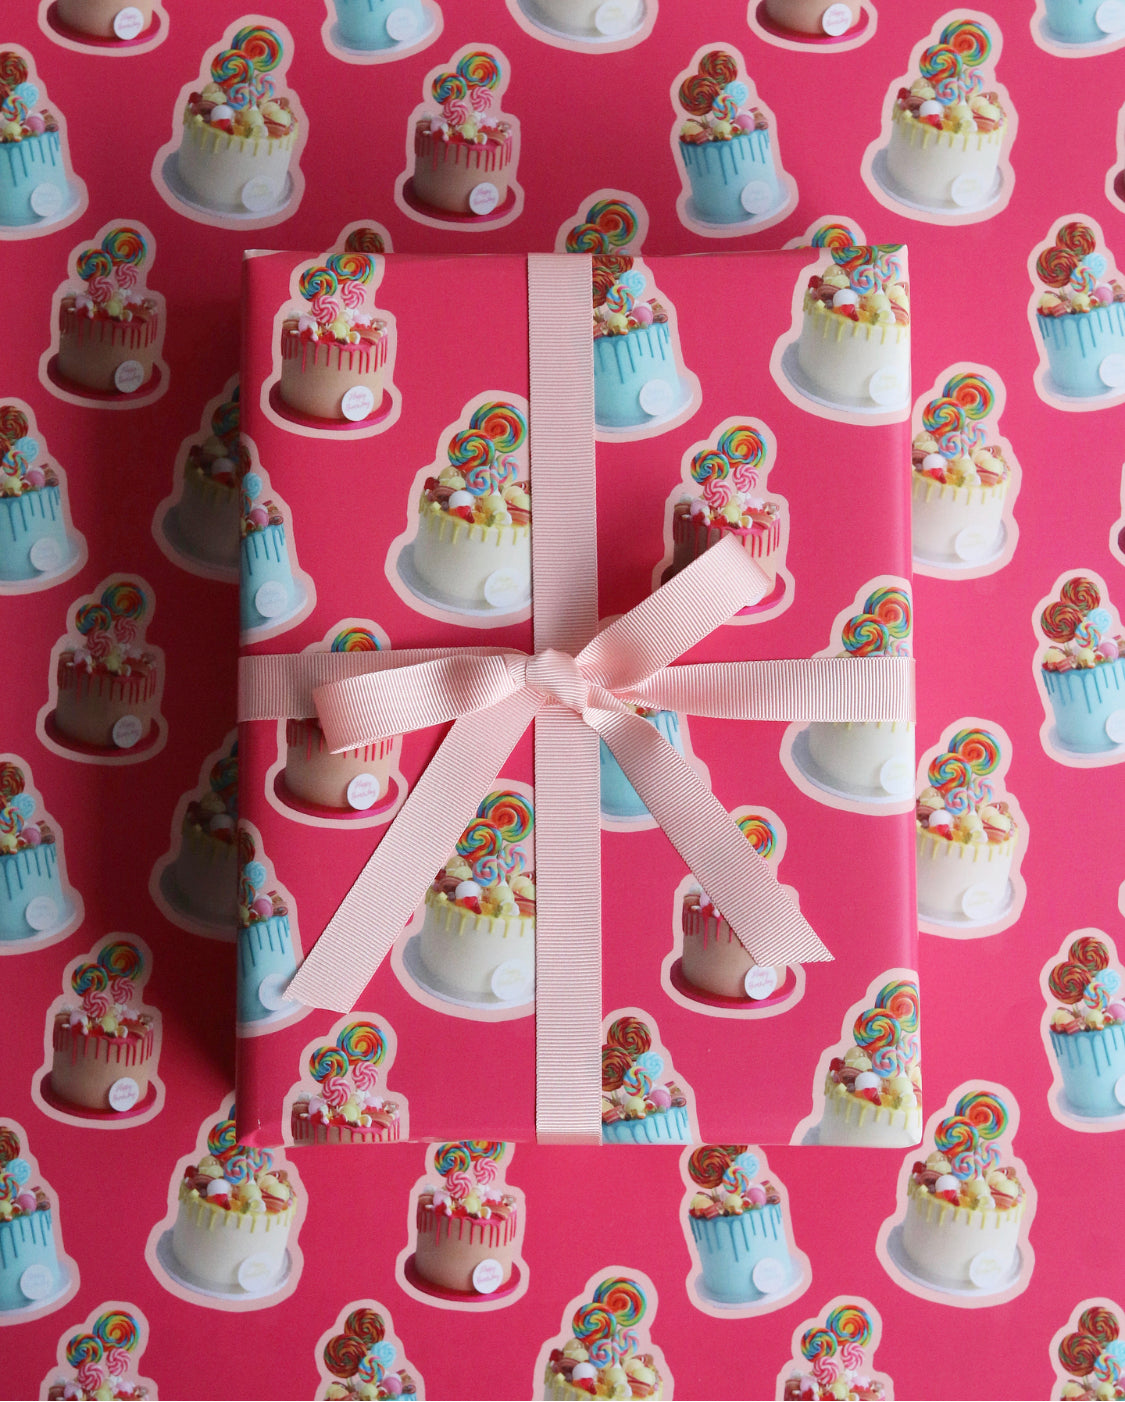 Sweetie Cake Pink Wrapping Paper tied with Ribbon